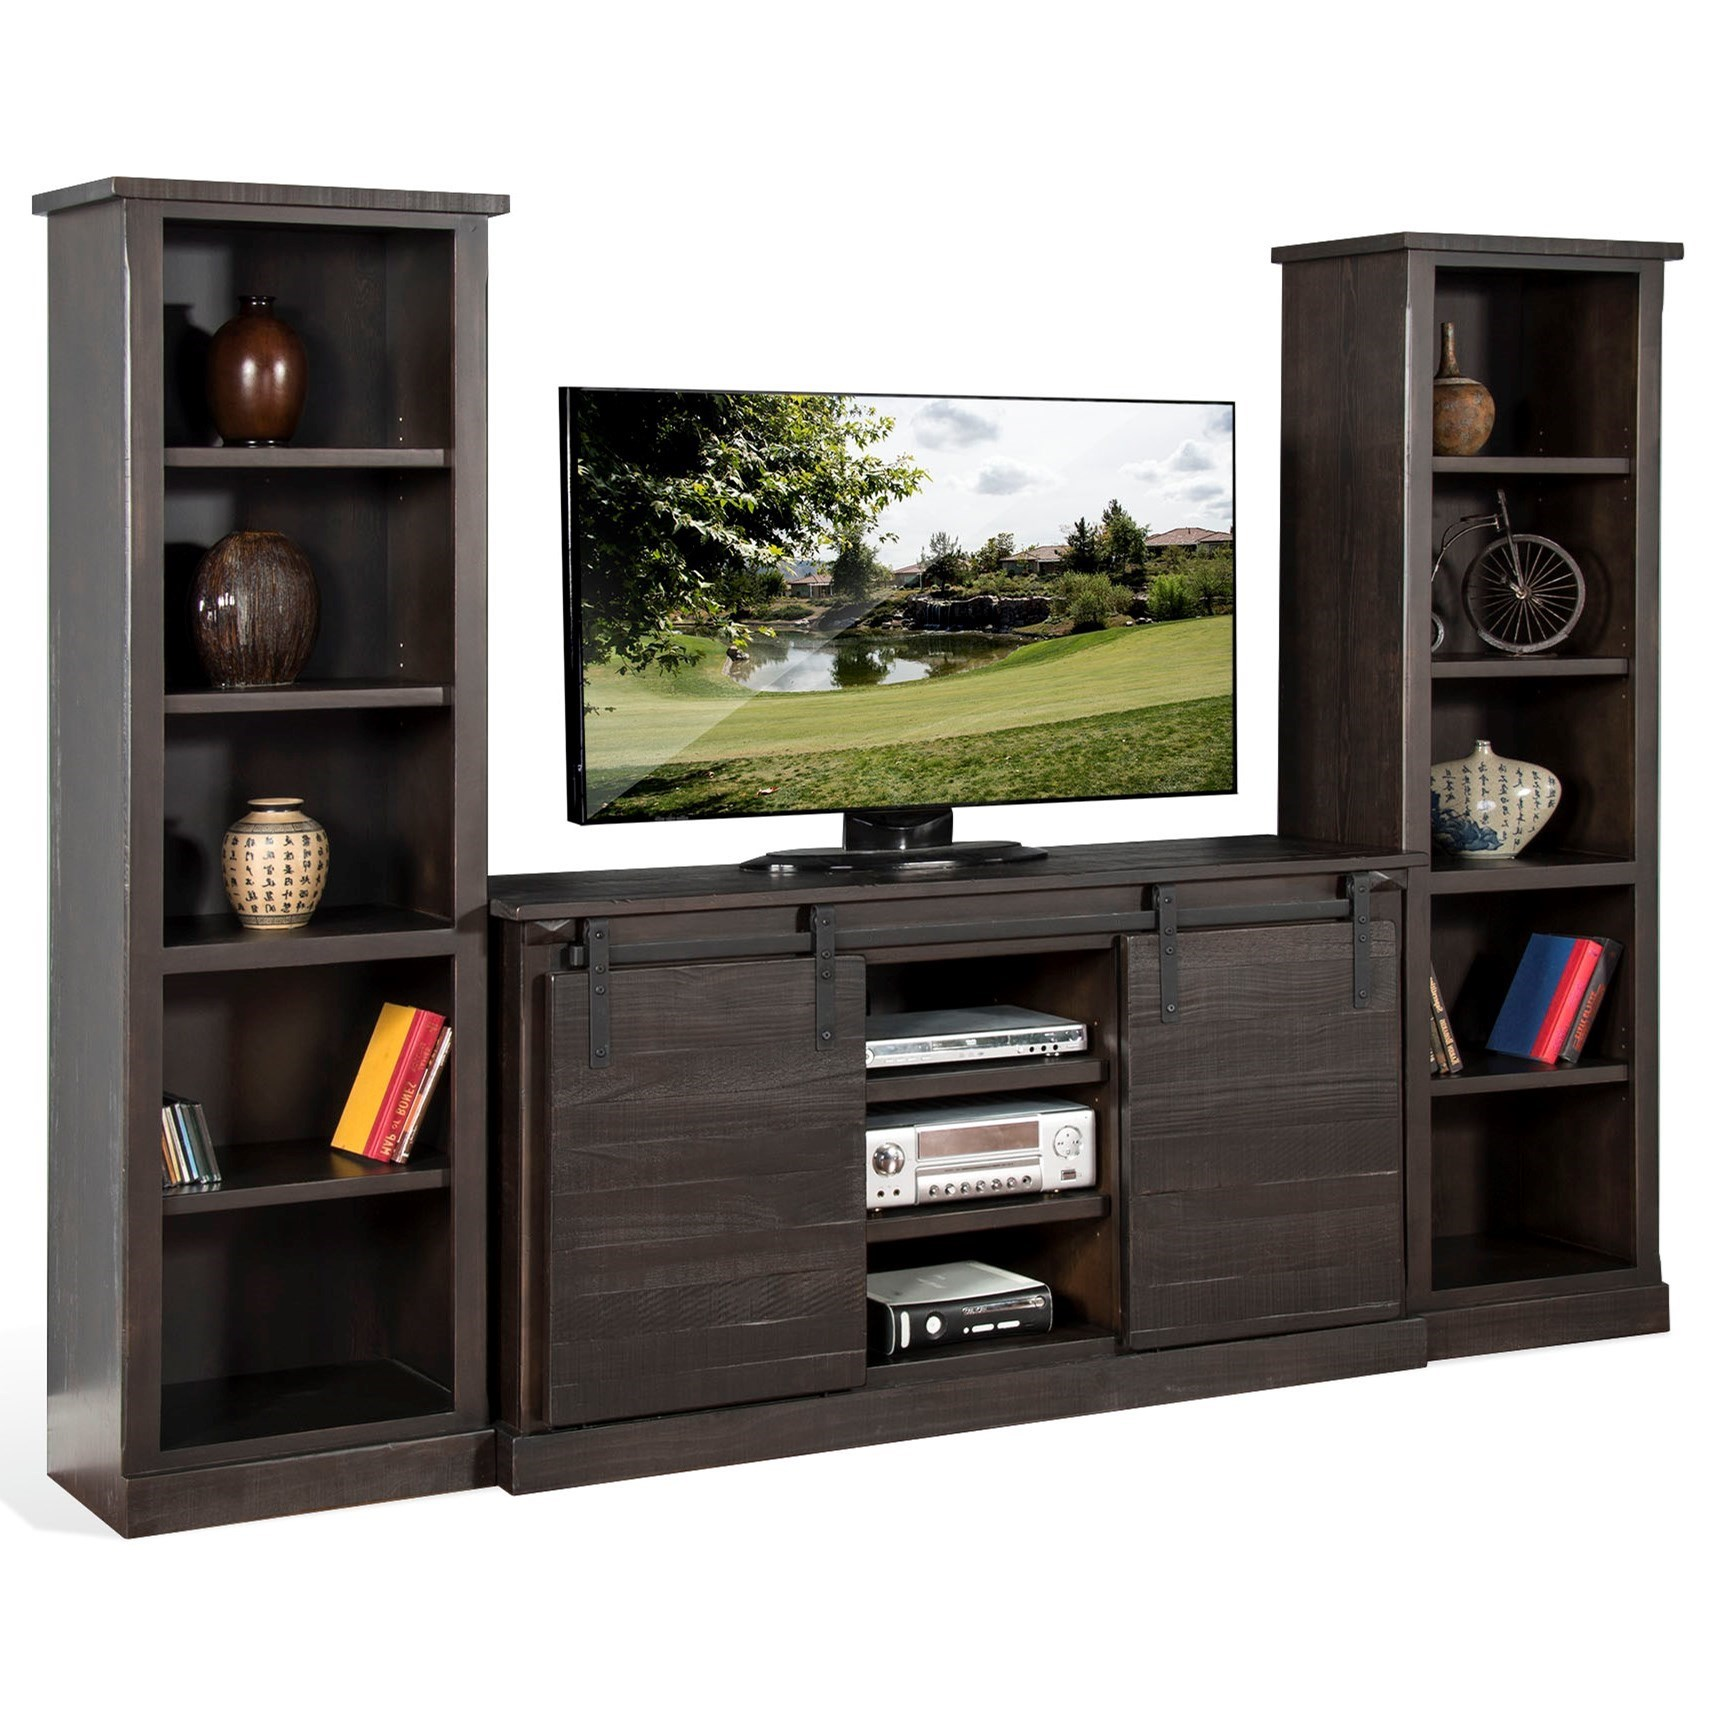 3577 Entertainment Wall Unit by Sunny Designs at Miller Home